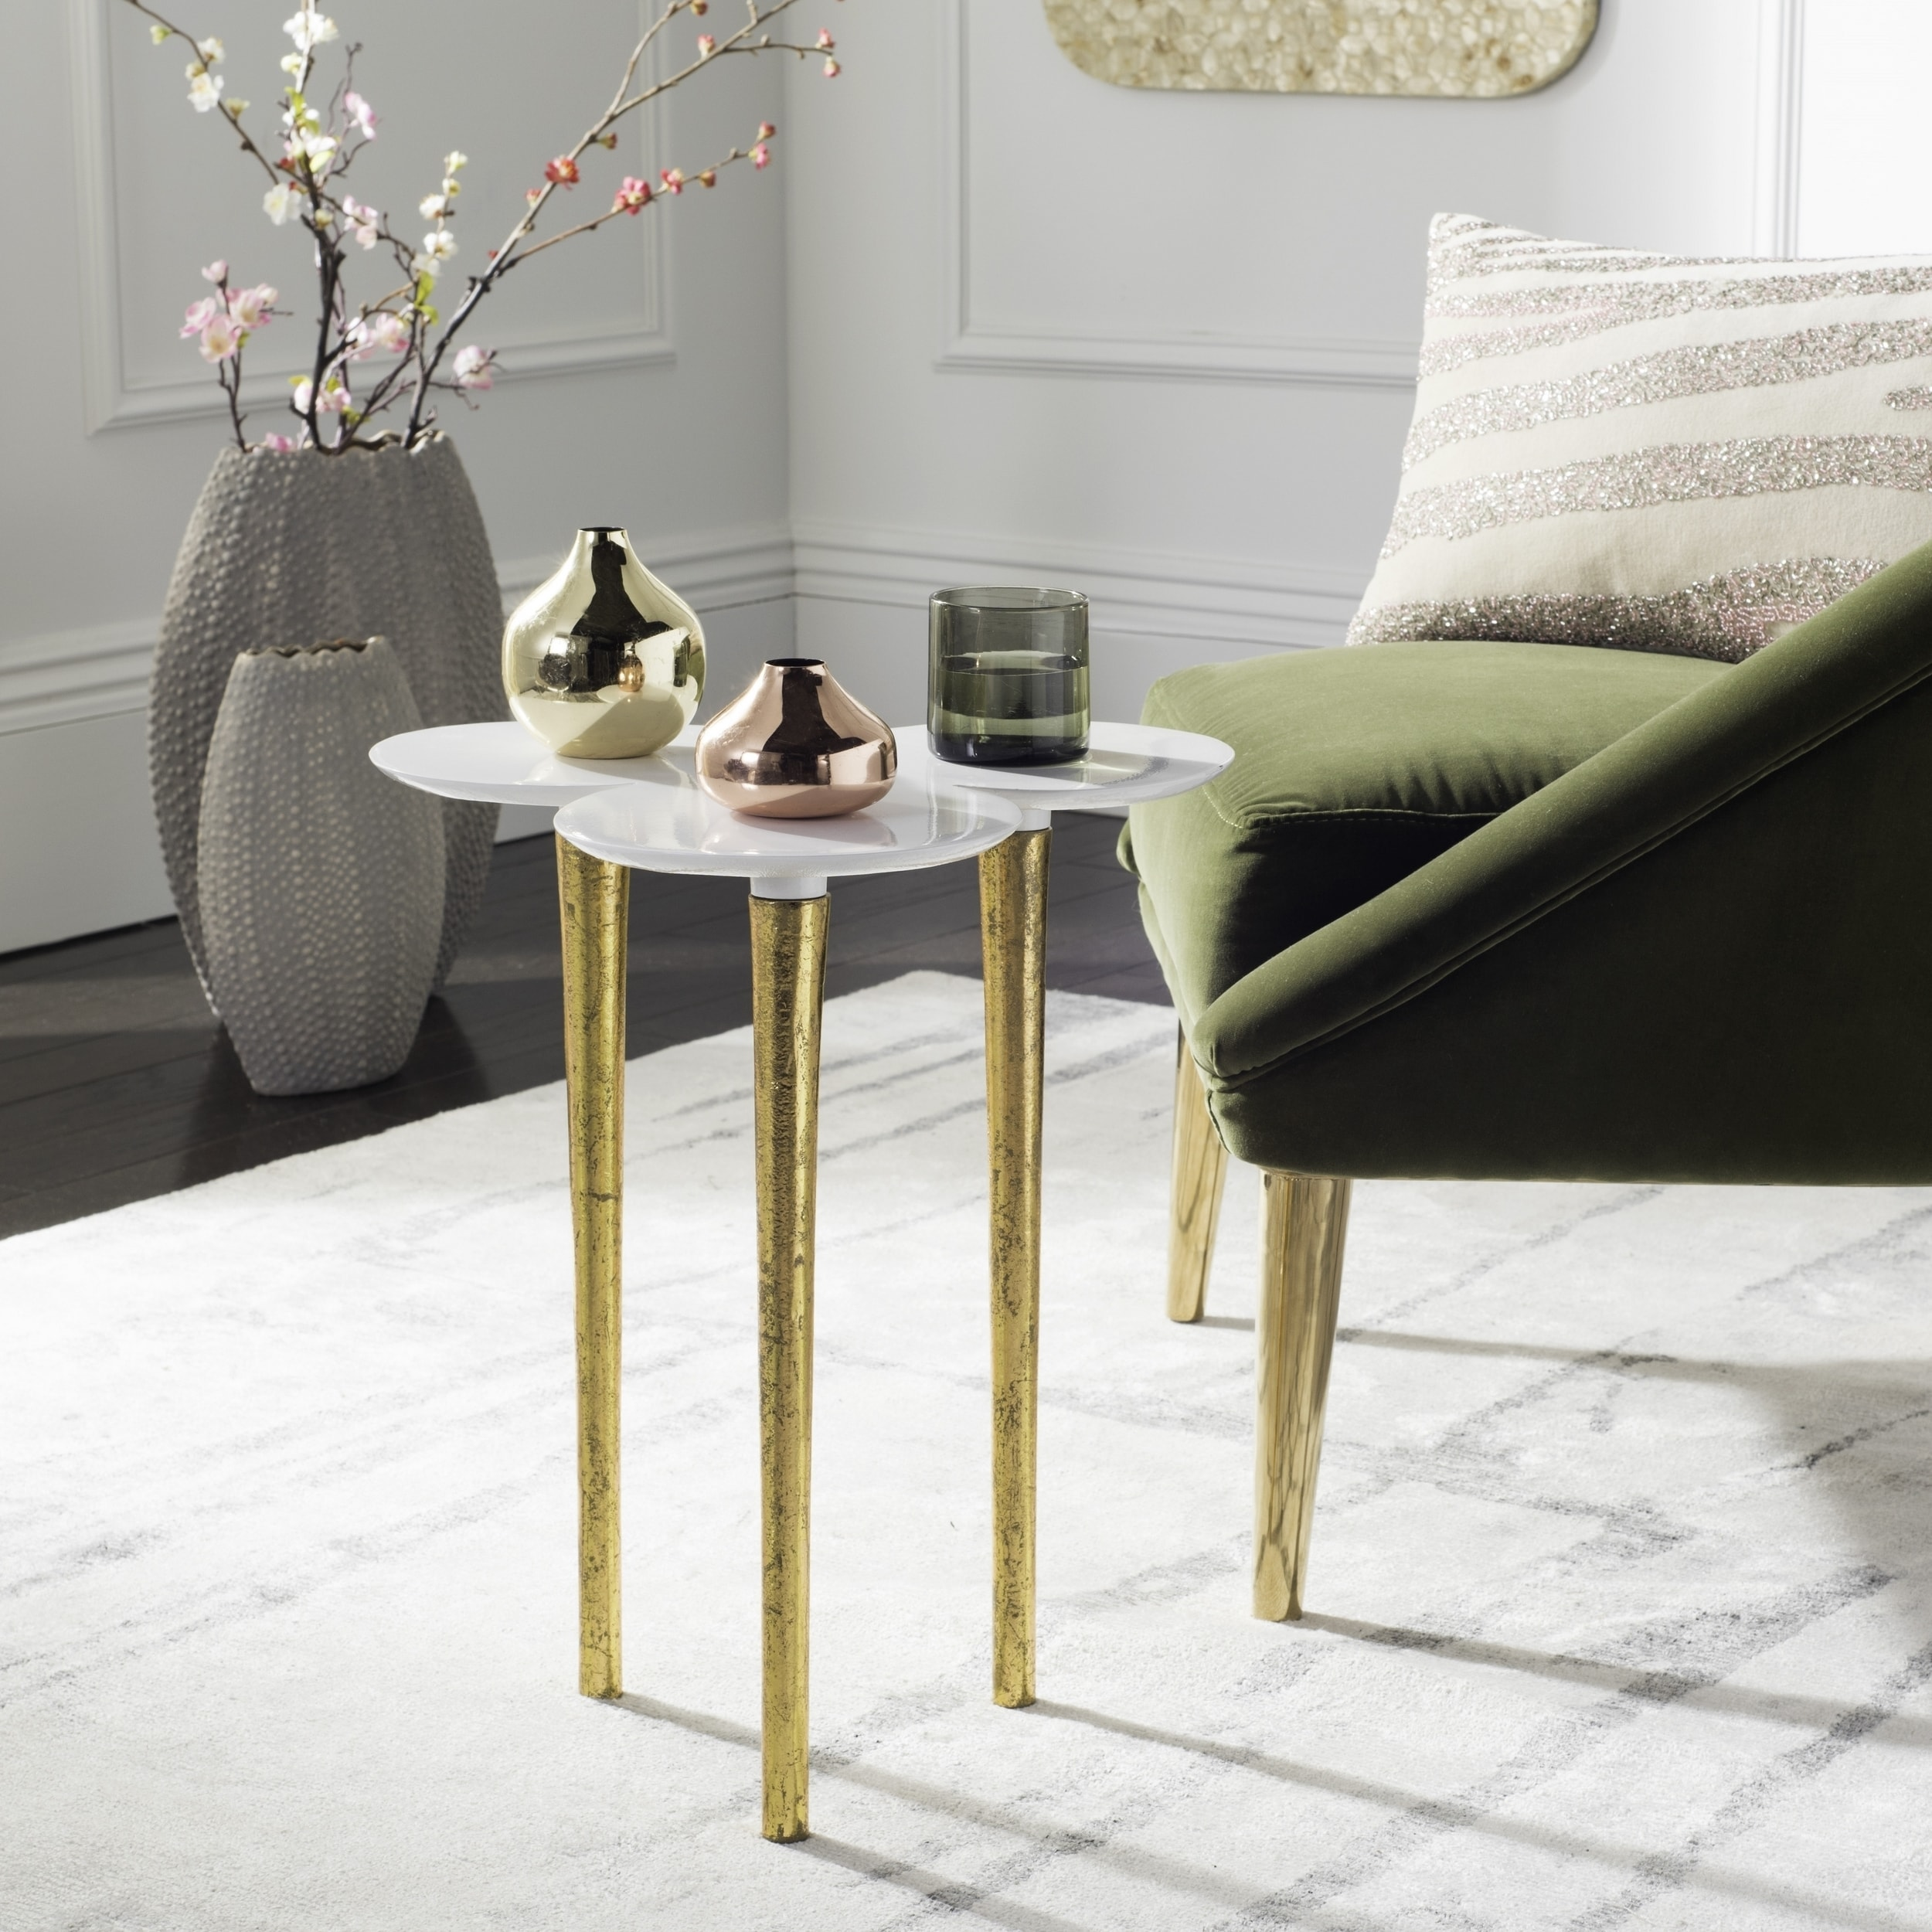 Shop safavieh aria white gold accent table on sale free shipping today overstock com 16324597